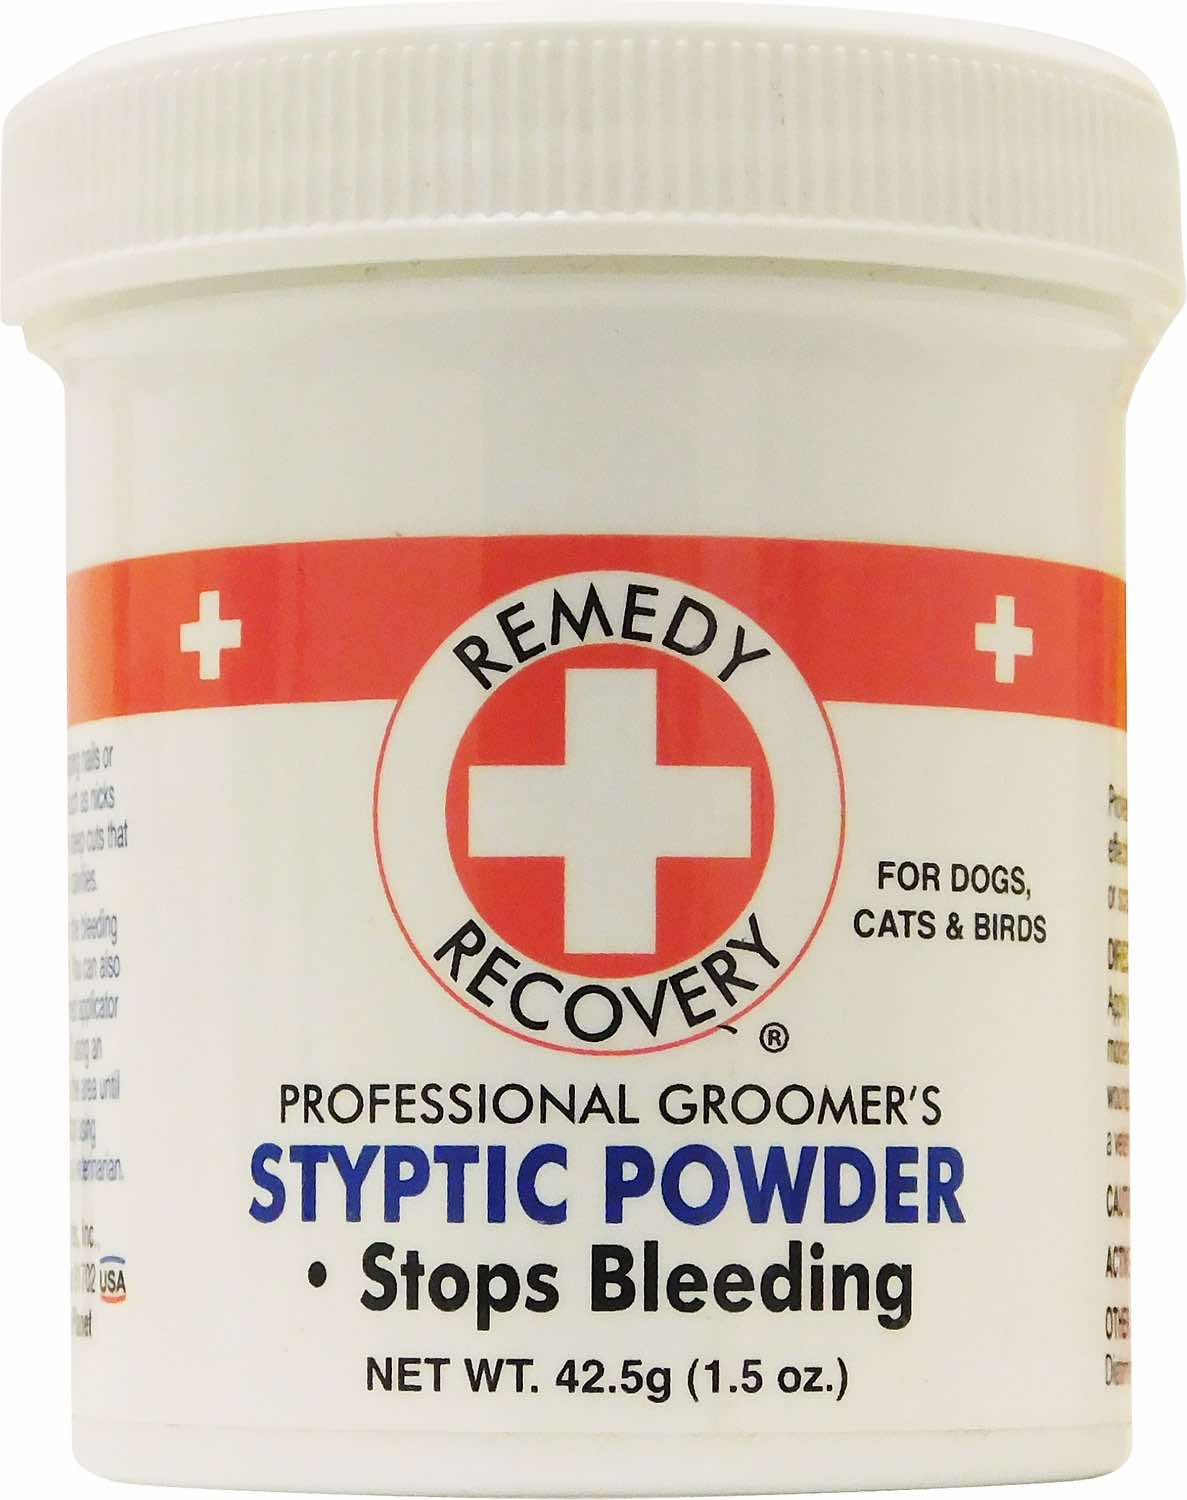 Remedy+Recovery Professional Groomer's Styptic Powder 1.5 oz 1